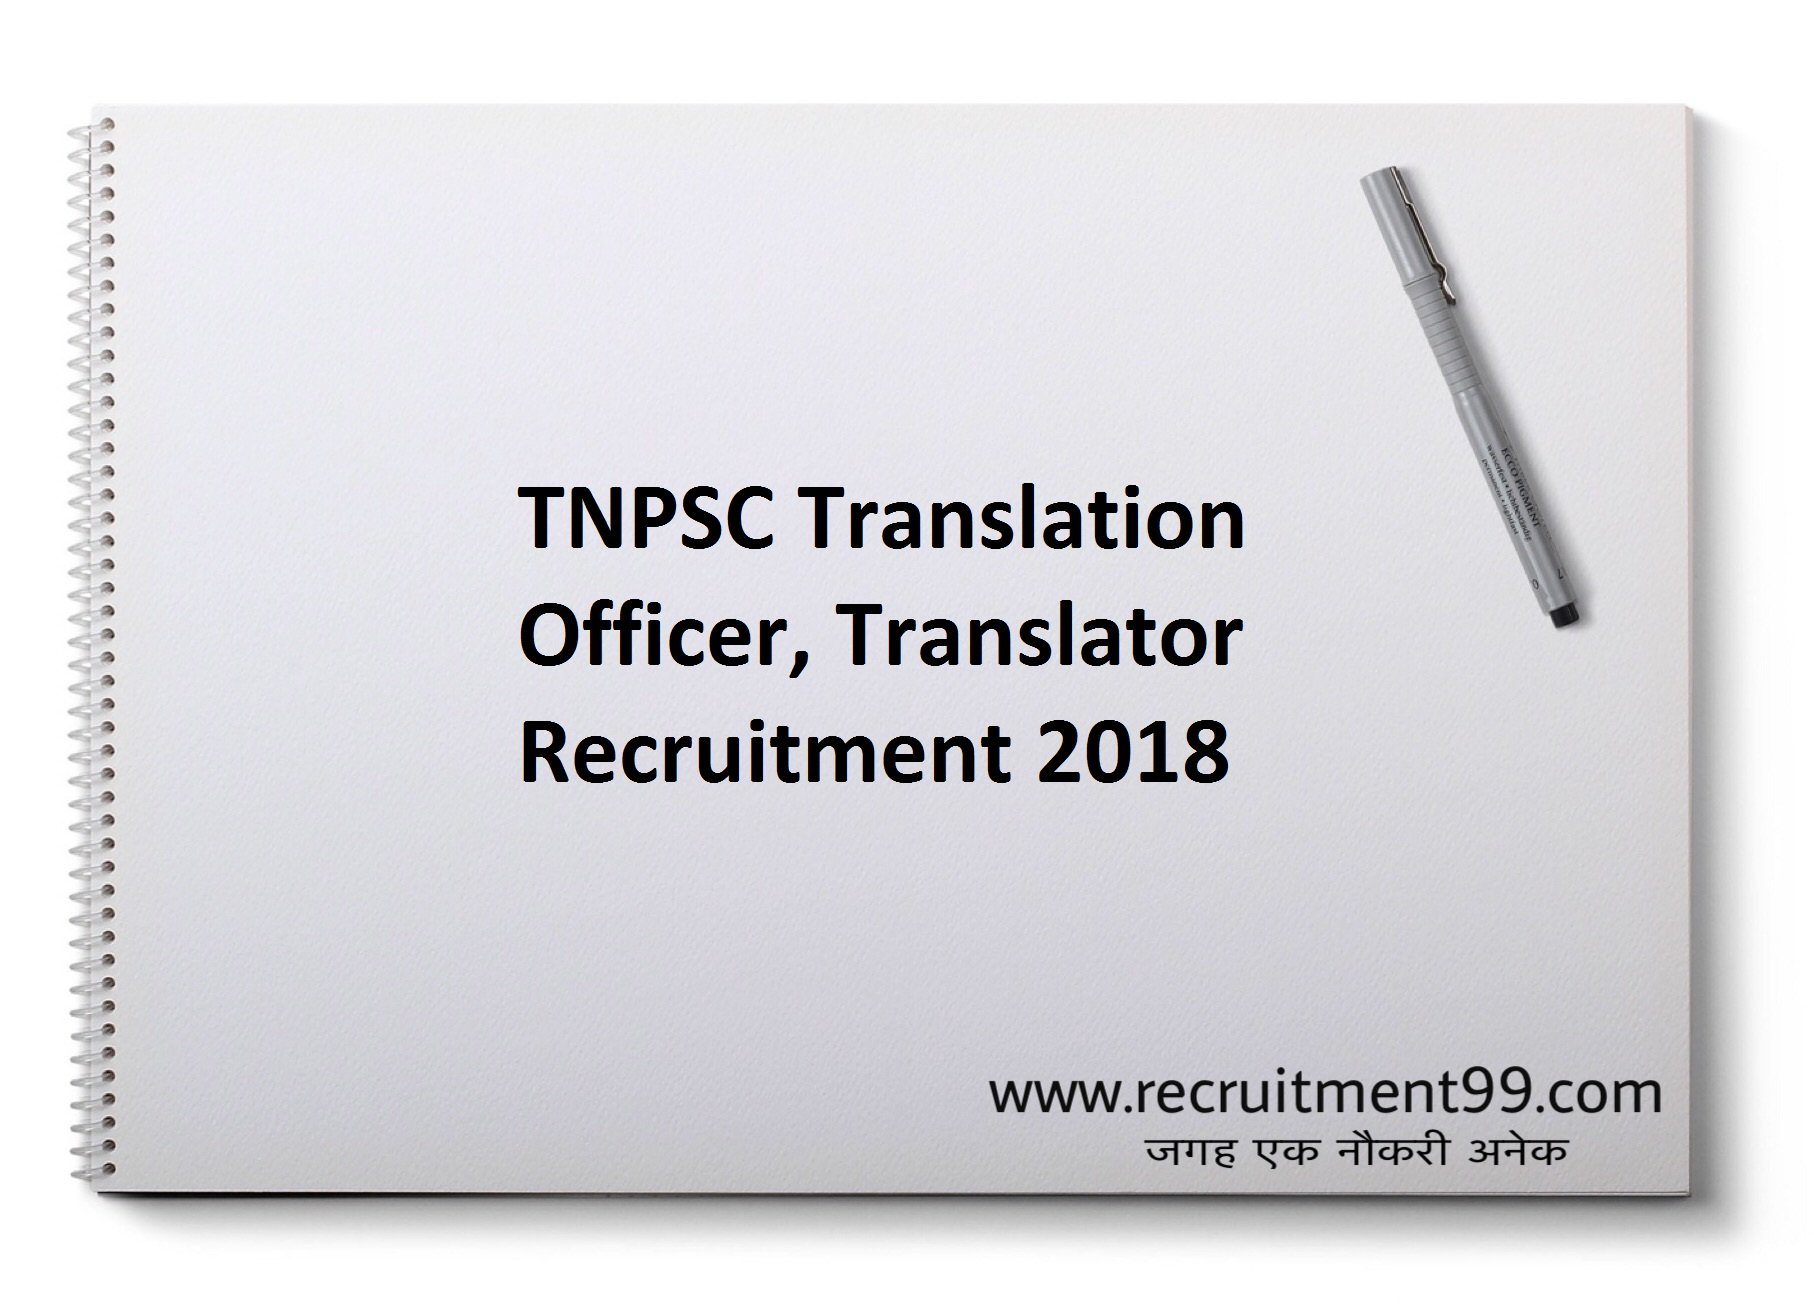 TNPSC Translation Officer Translator Recruitment Hall Ticket Result 2018